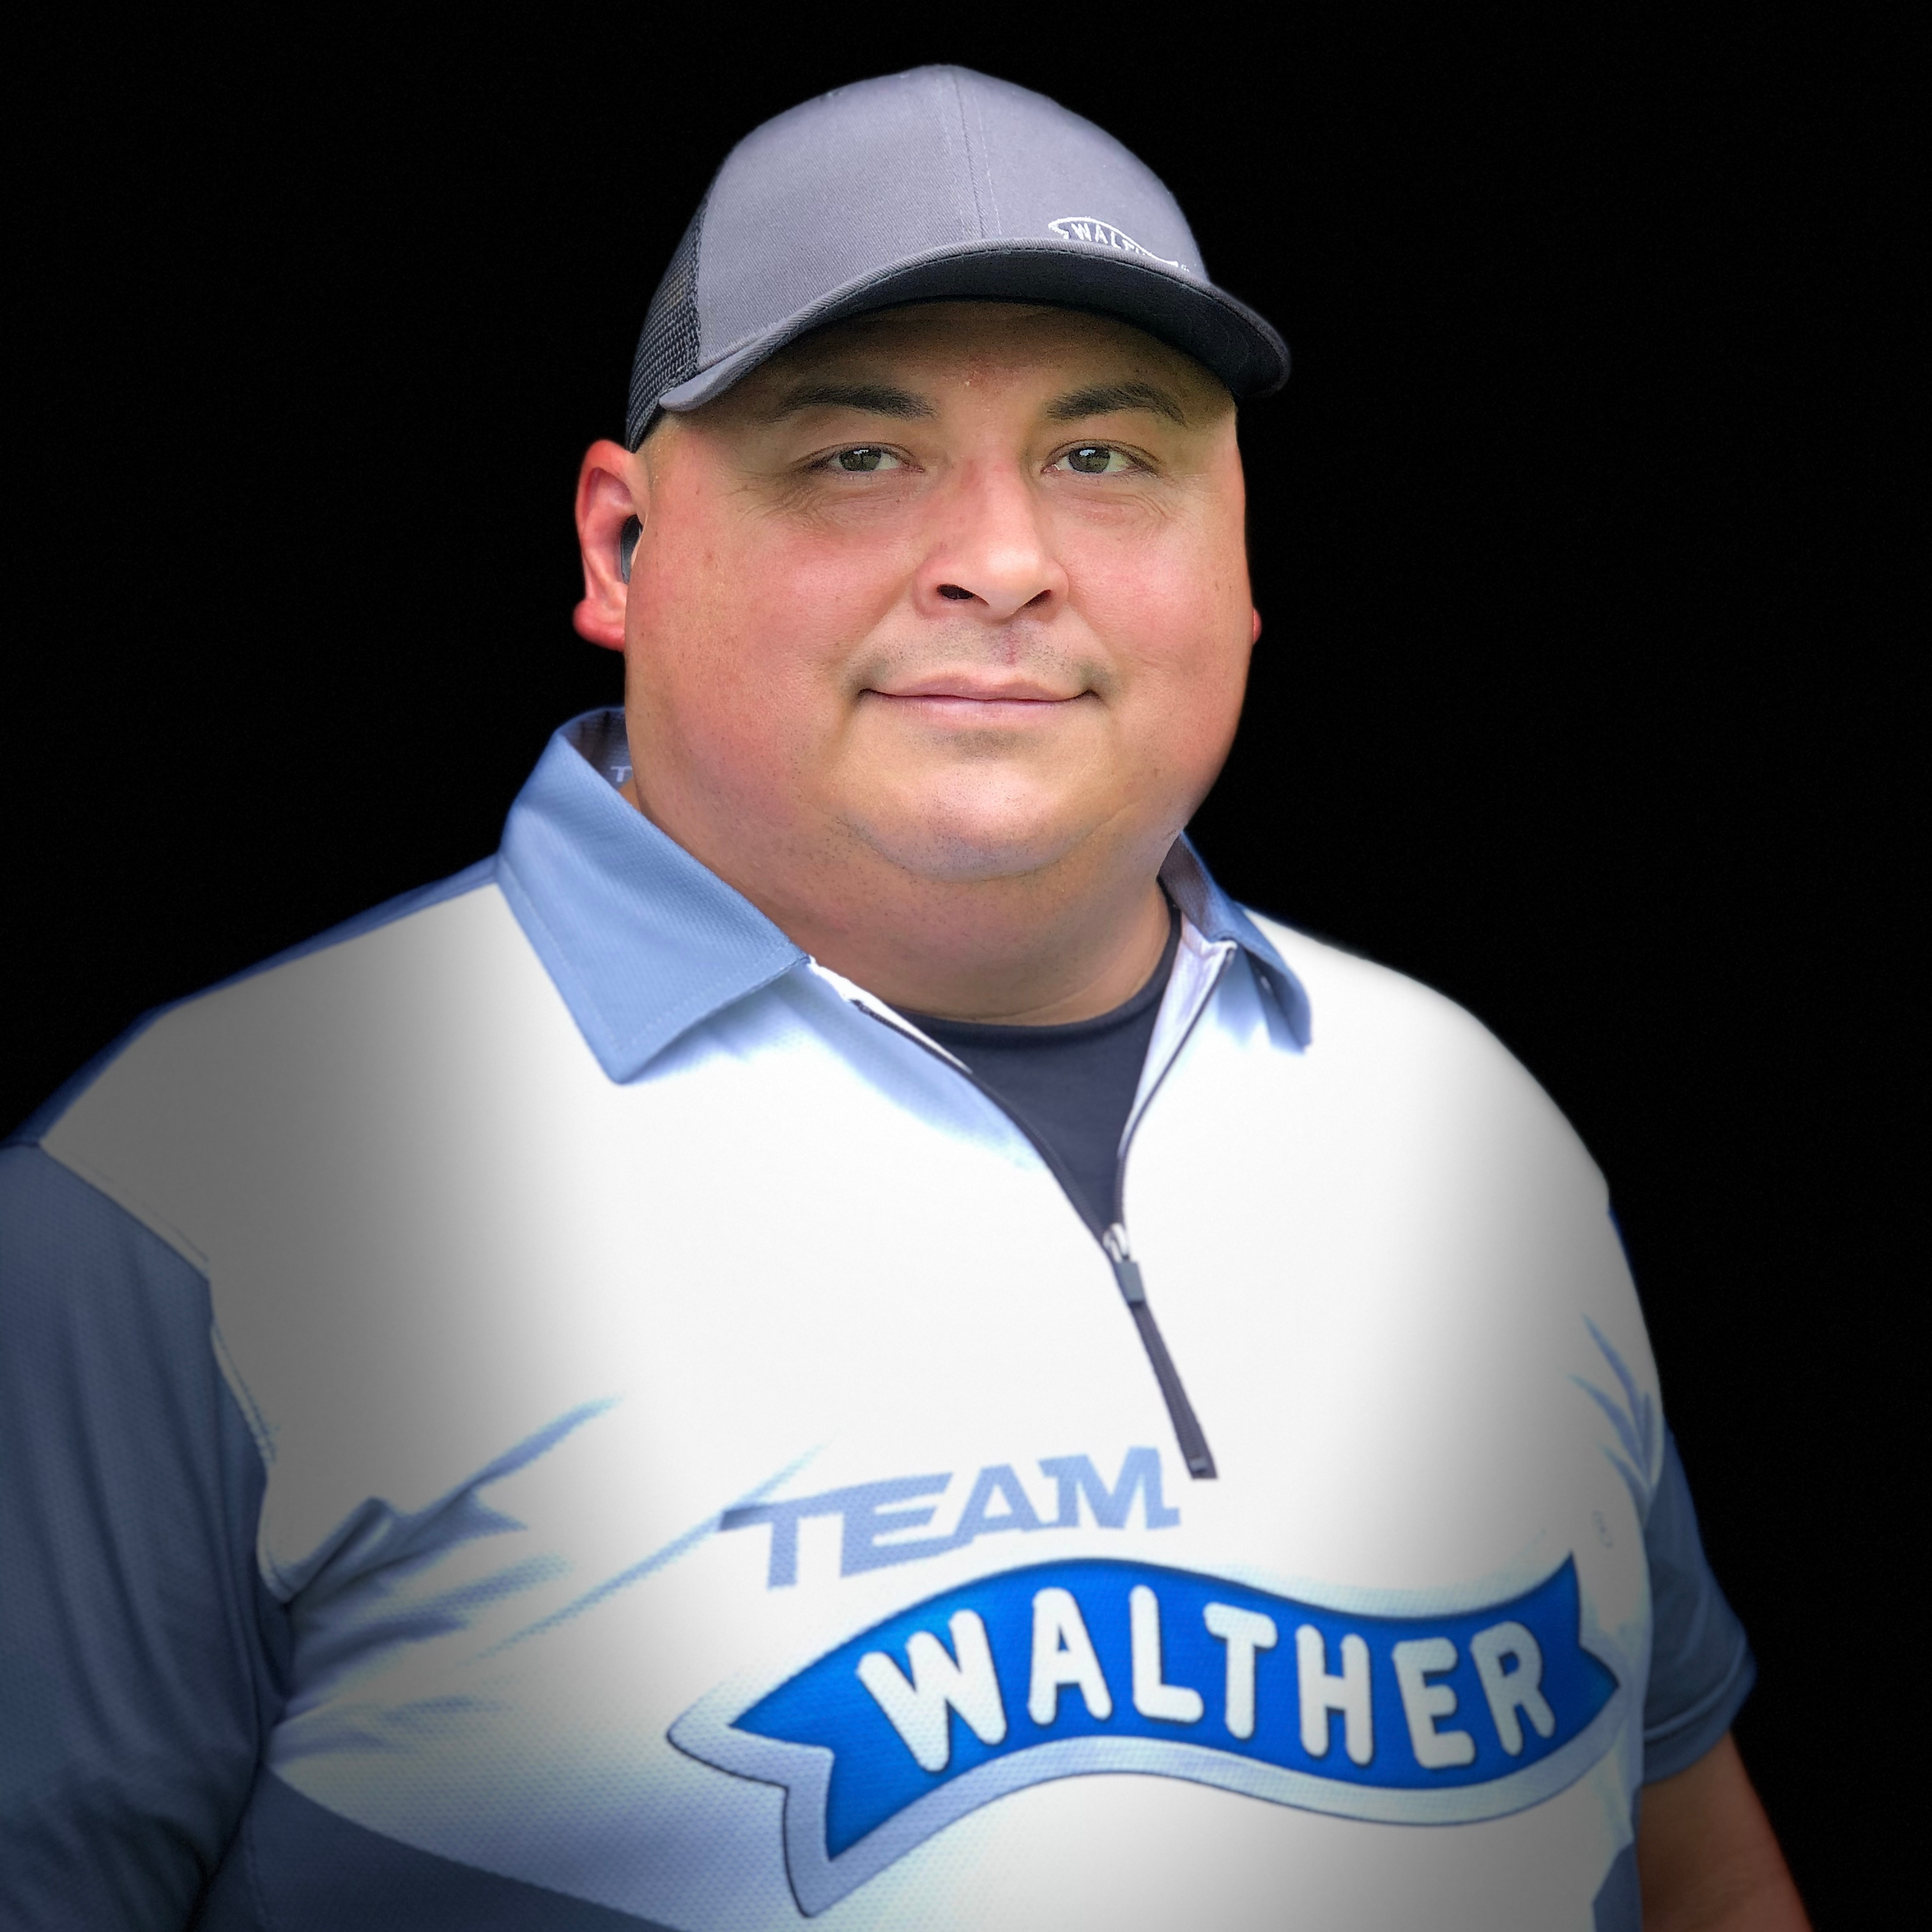 Walther Team Bobby McGee